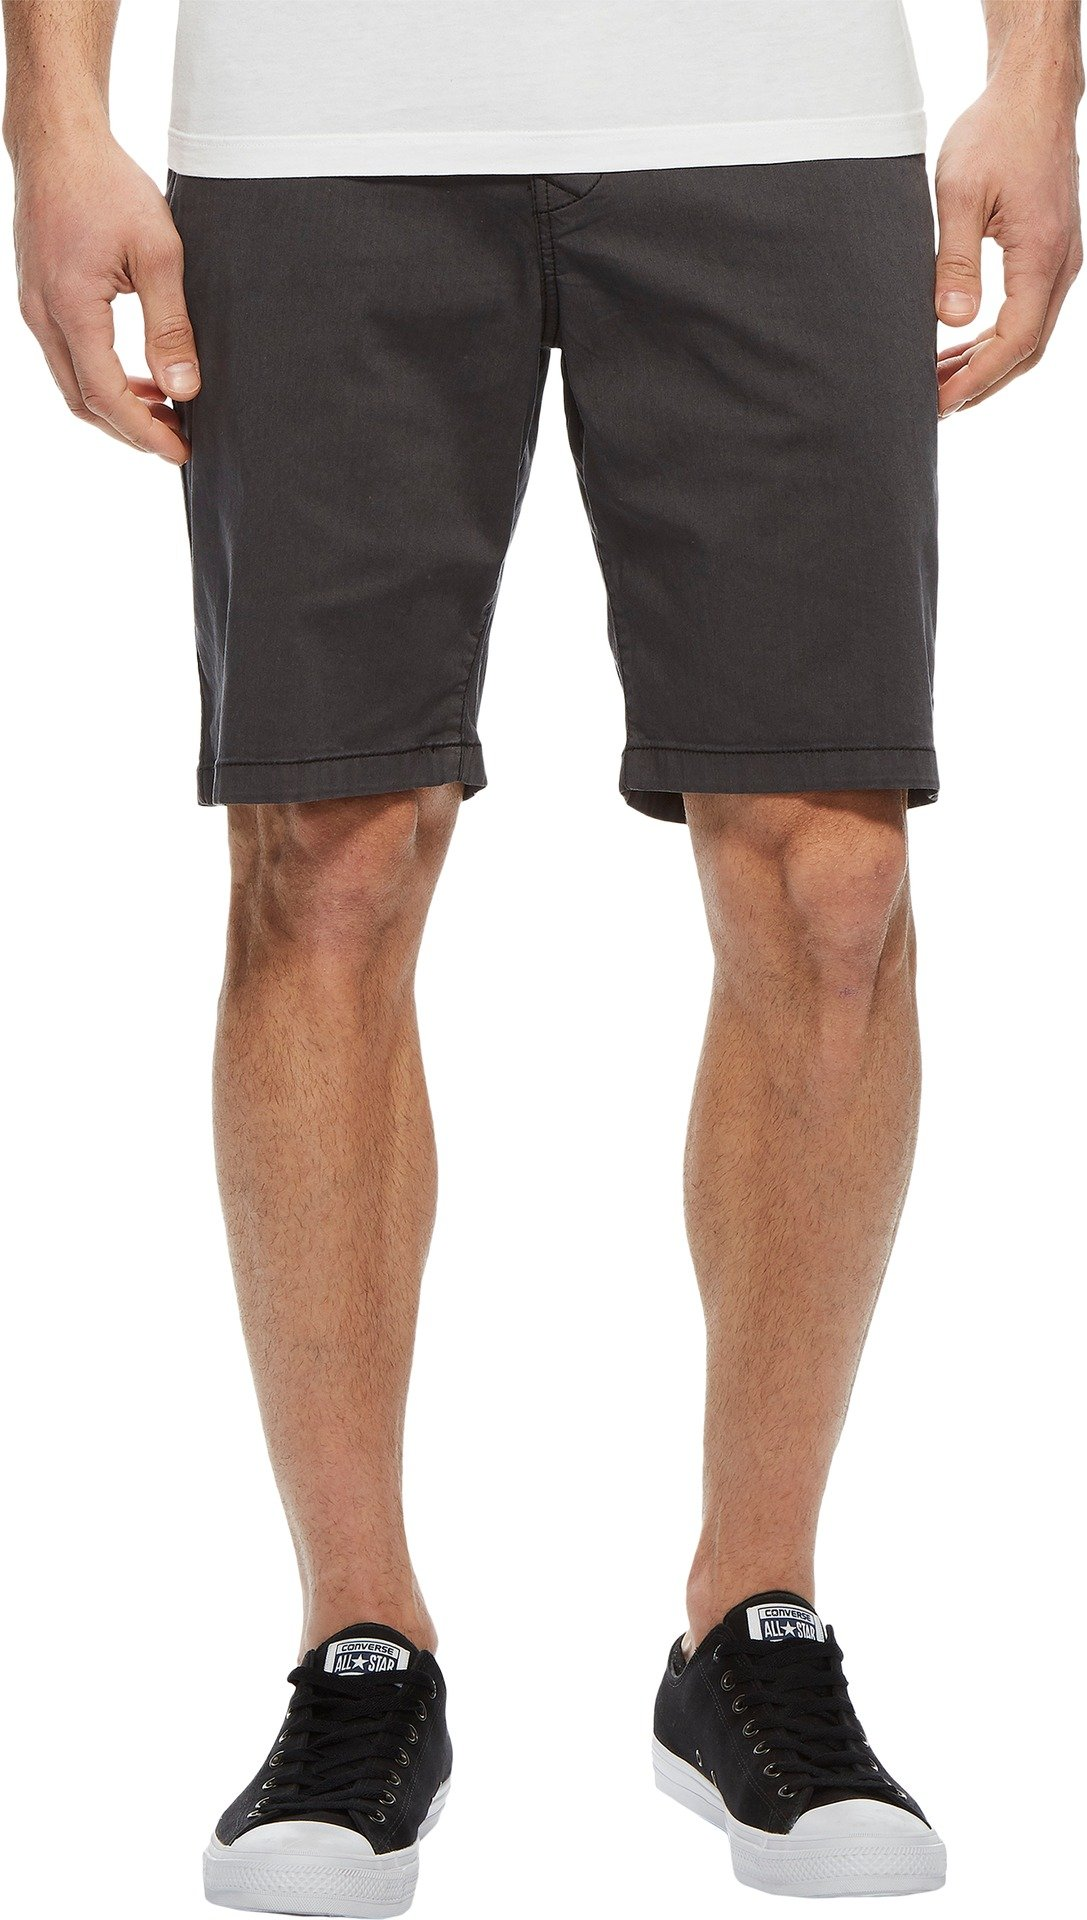 Lucky Brand Men's Stretch Sateen Flat Front Shorts Phantom 38W x 9L